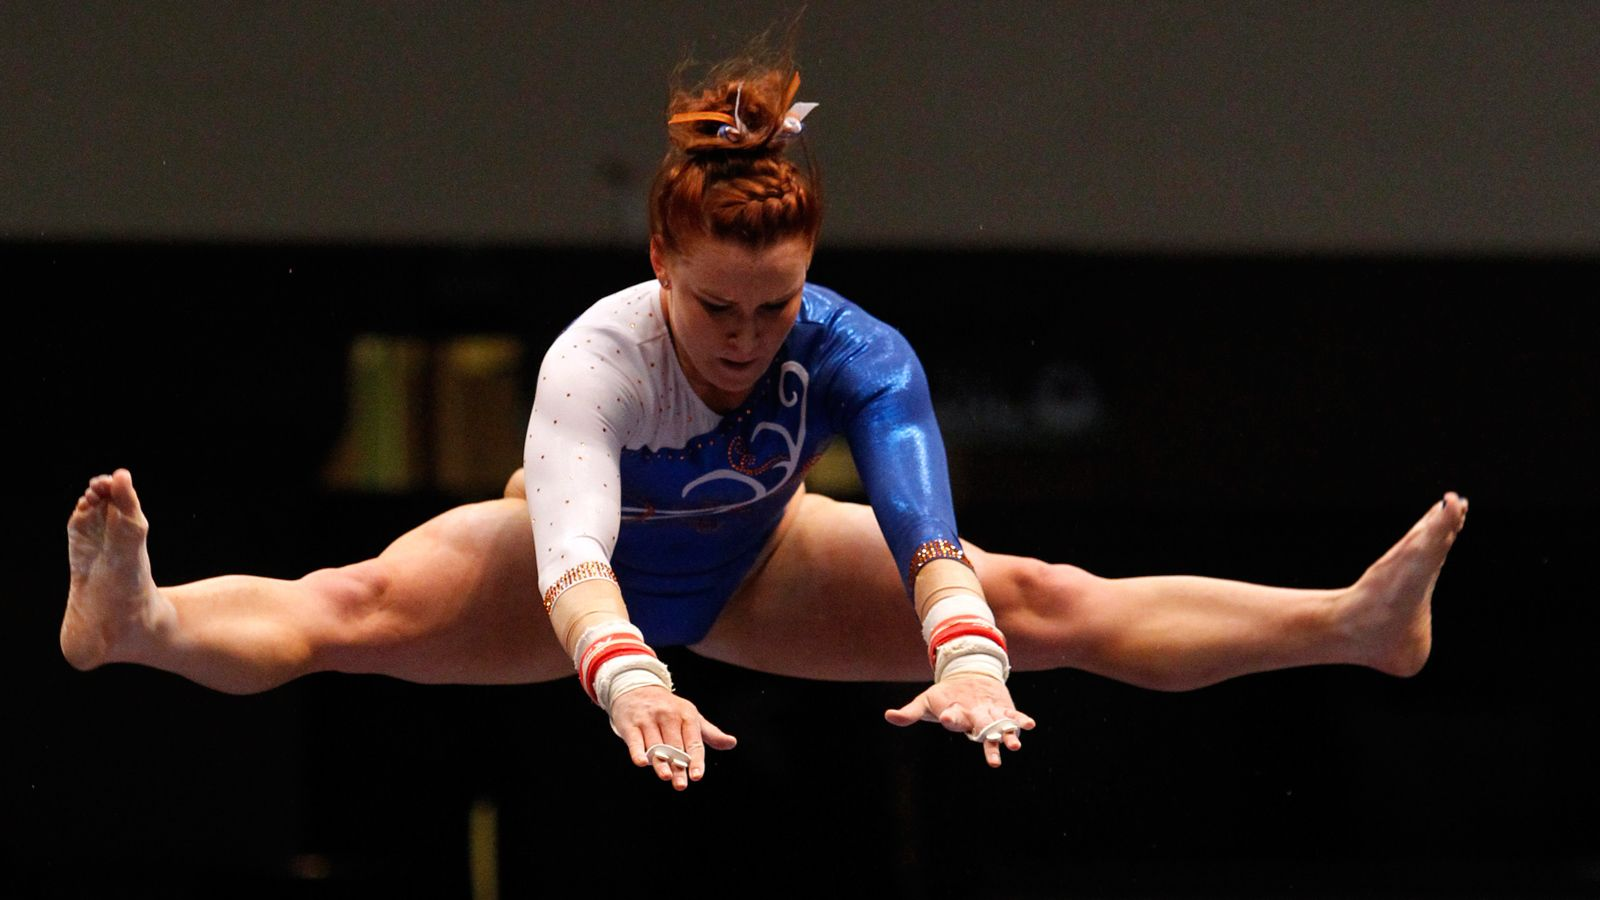 No 1 Uf Gymnastics Team Wins Season Opener At Ball St